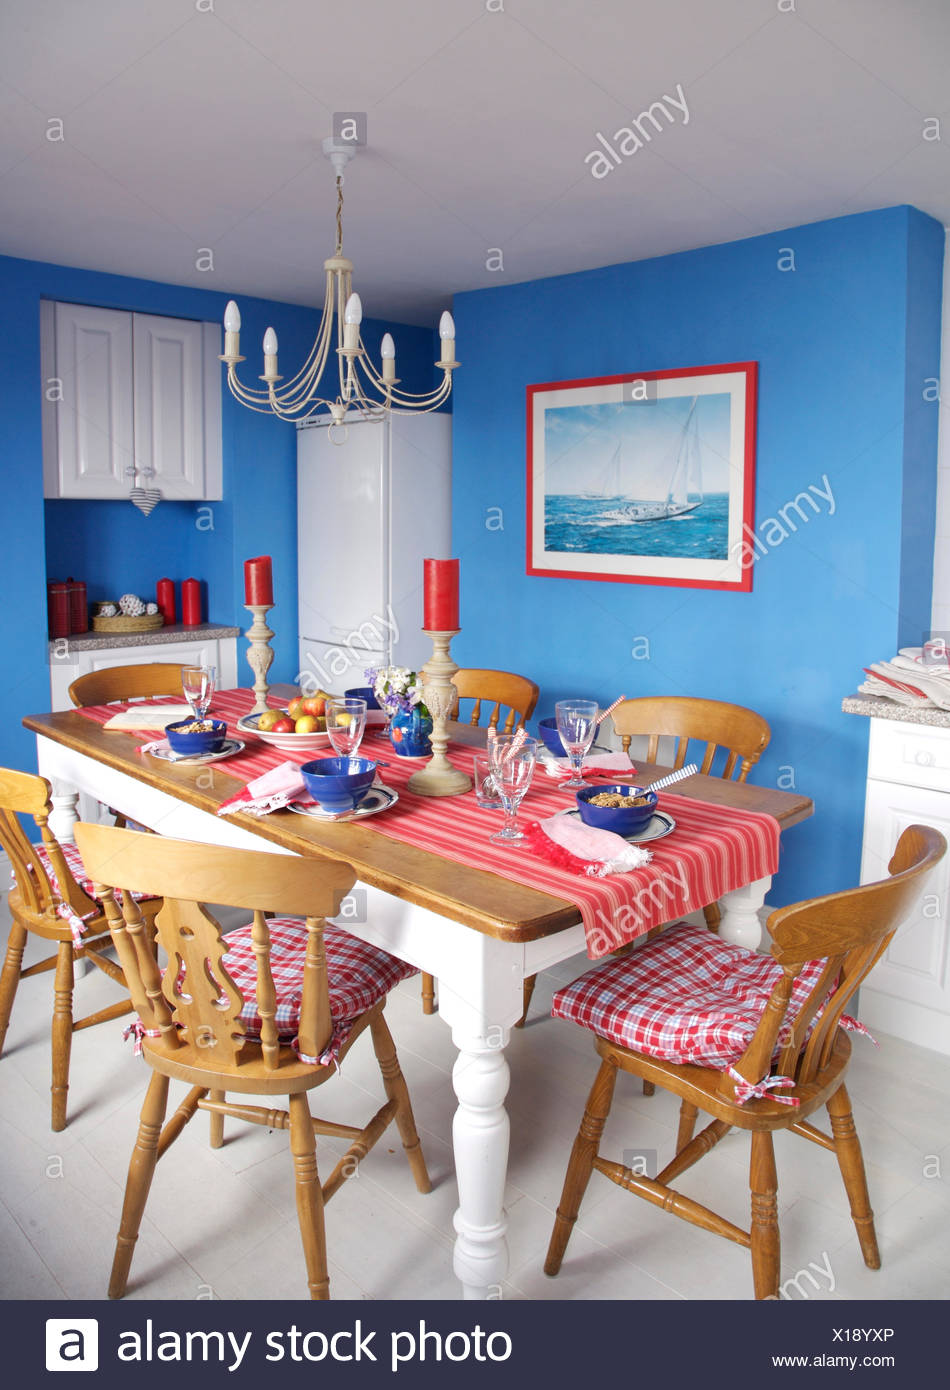 Red checked cushions on wooden chairs at painted table in ...